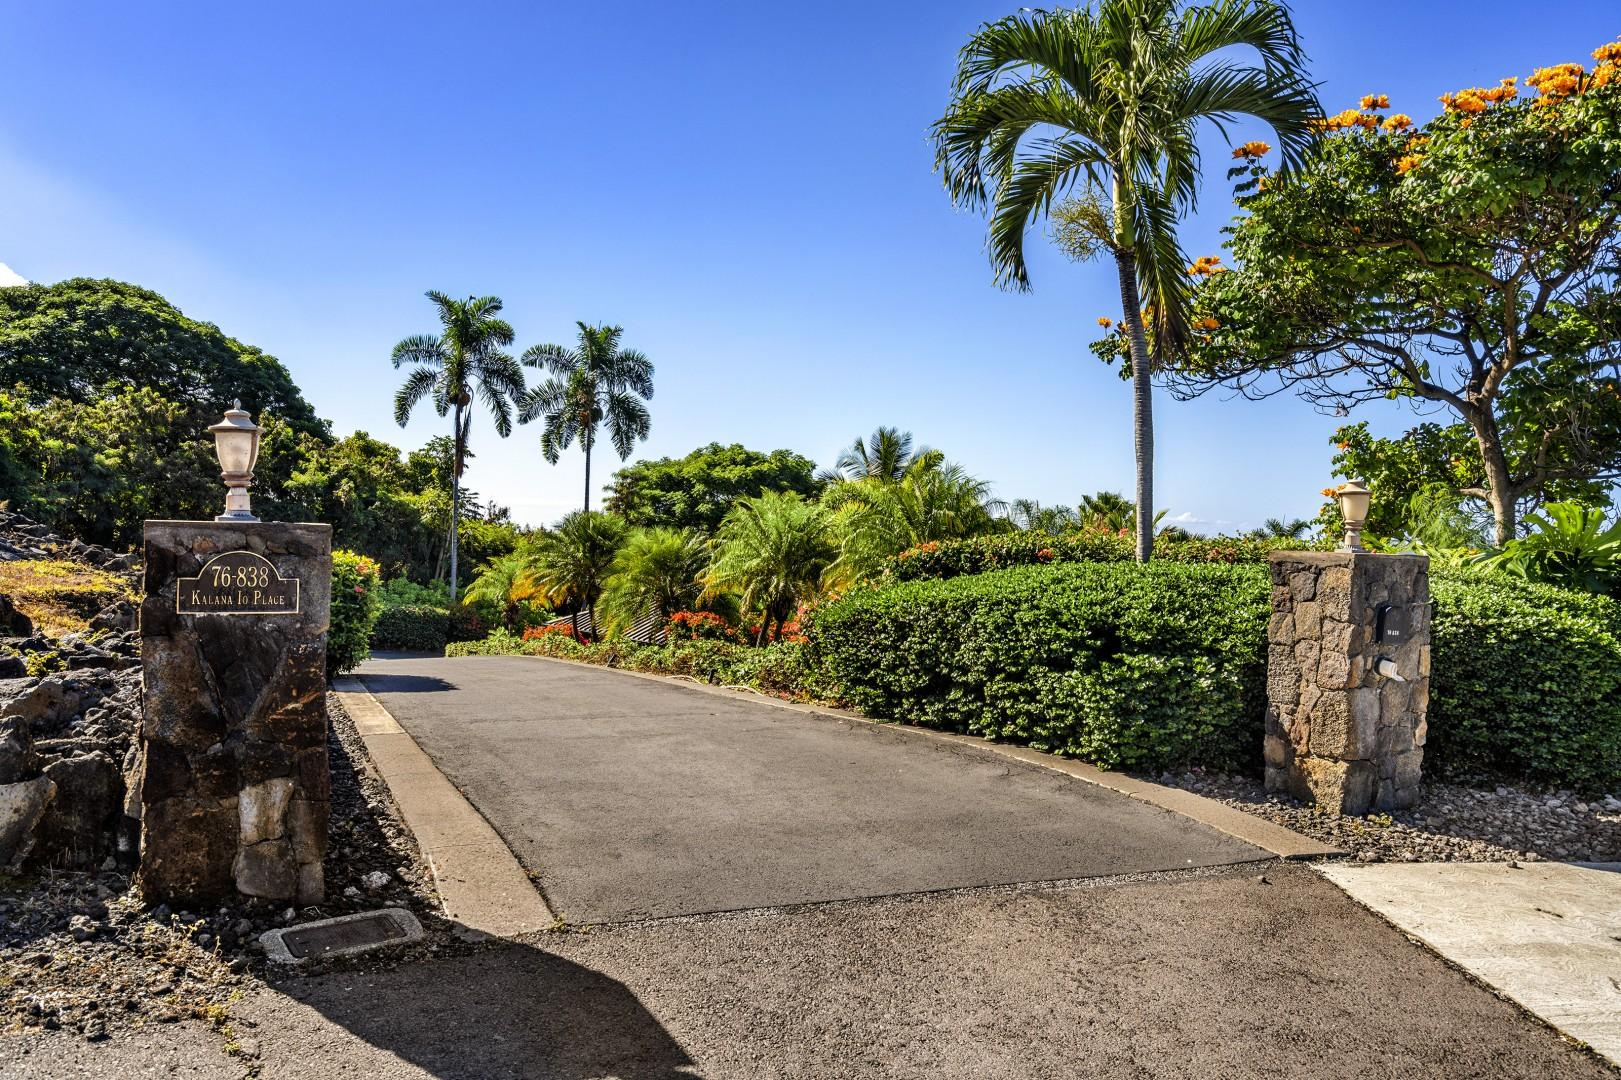 Top of the driveway